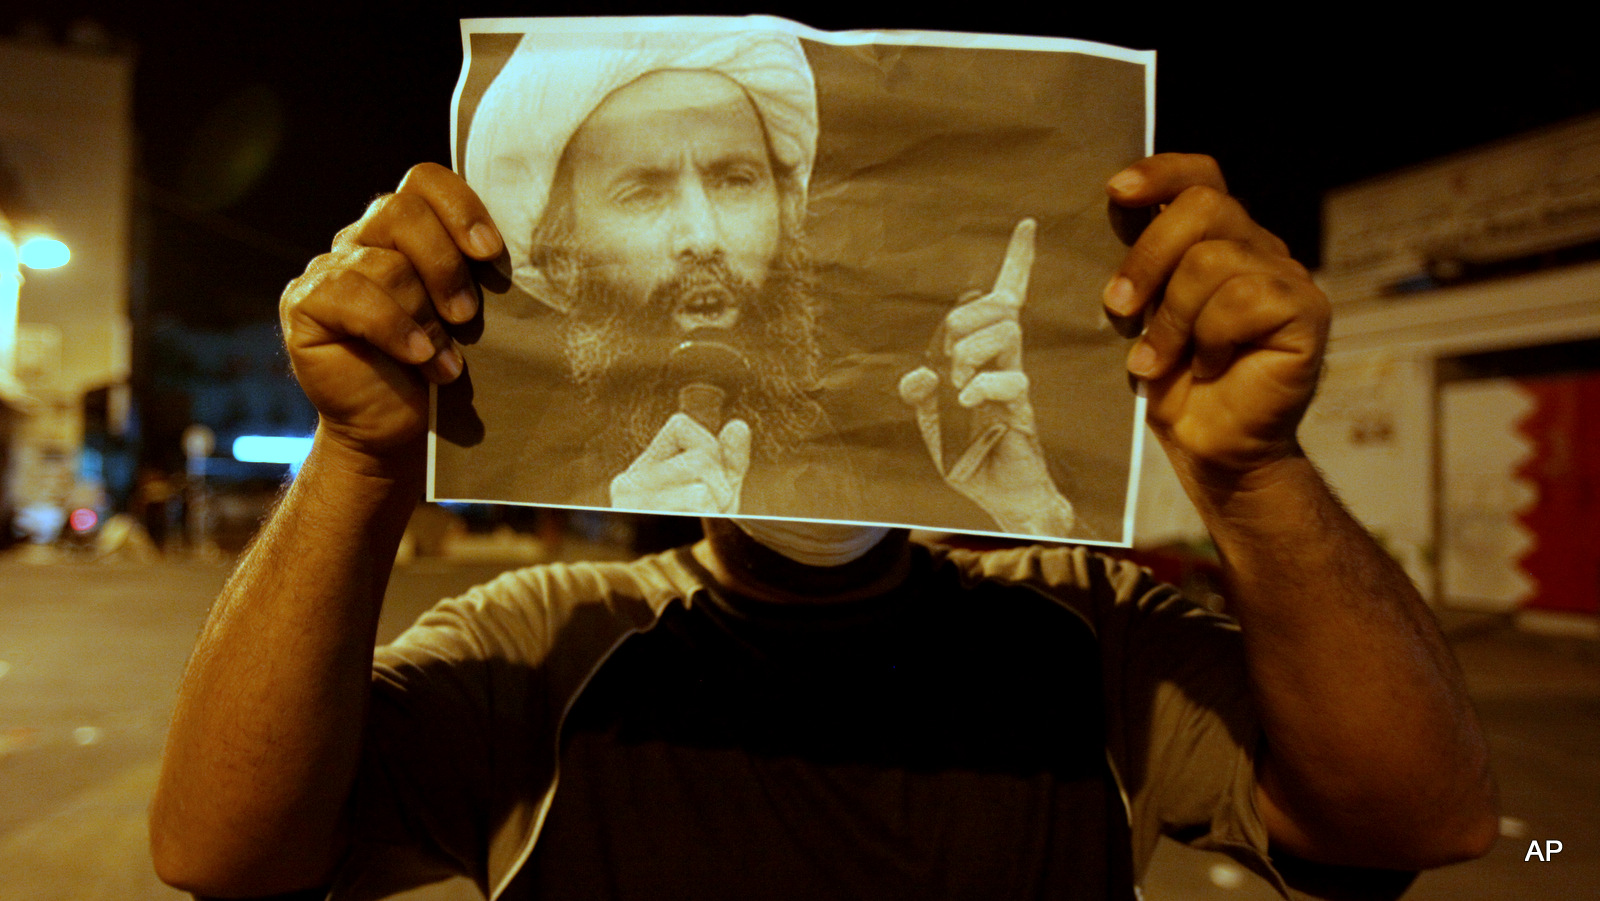 A Bahraini anti-government protester holds up a picture of jailed Saudi Sheik Nimr al-Nimr during clashes with riot police in Sanabis, Bahrain, a suburb of the capital Manama, Wednesday night, Oct. 15, 2014.  The outspoken and widely revered Shiite cleric was convicted Wednesday in Saudi Arabia of sedition and other charges and sentenced to death, raising fears of renewed unrest from his supporters in the kingdom and neighboring Bahrain.